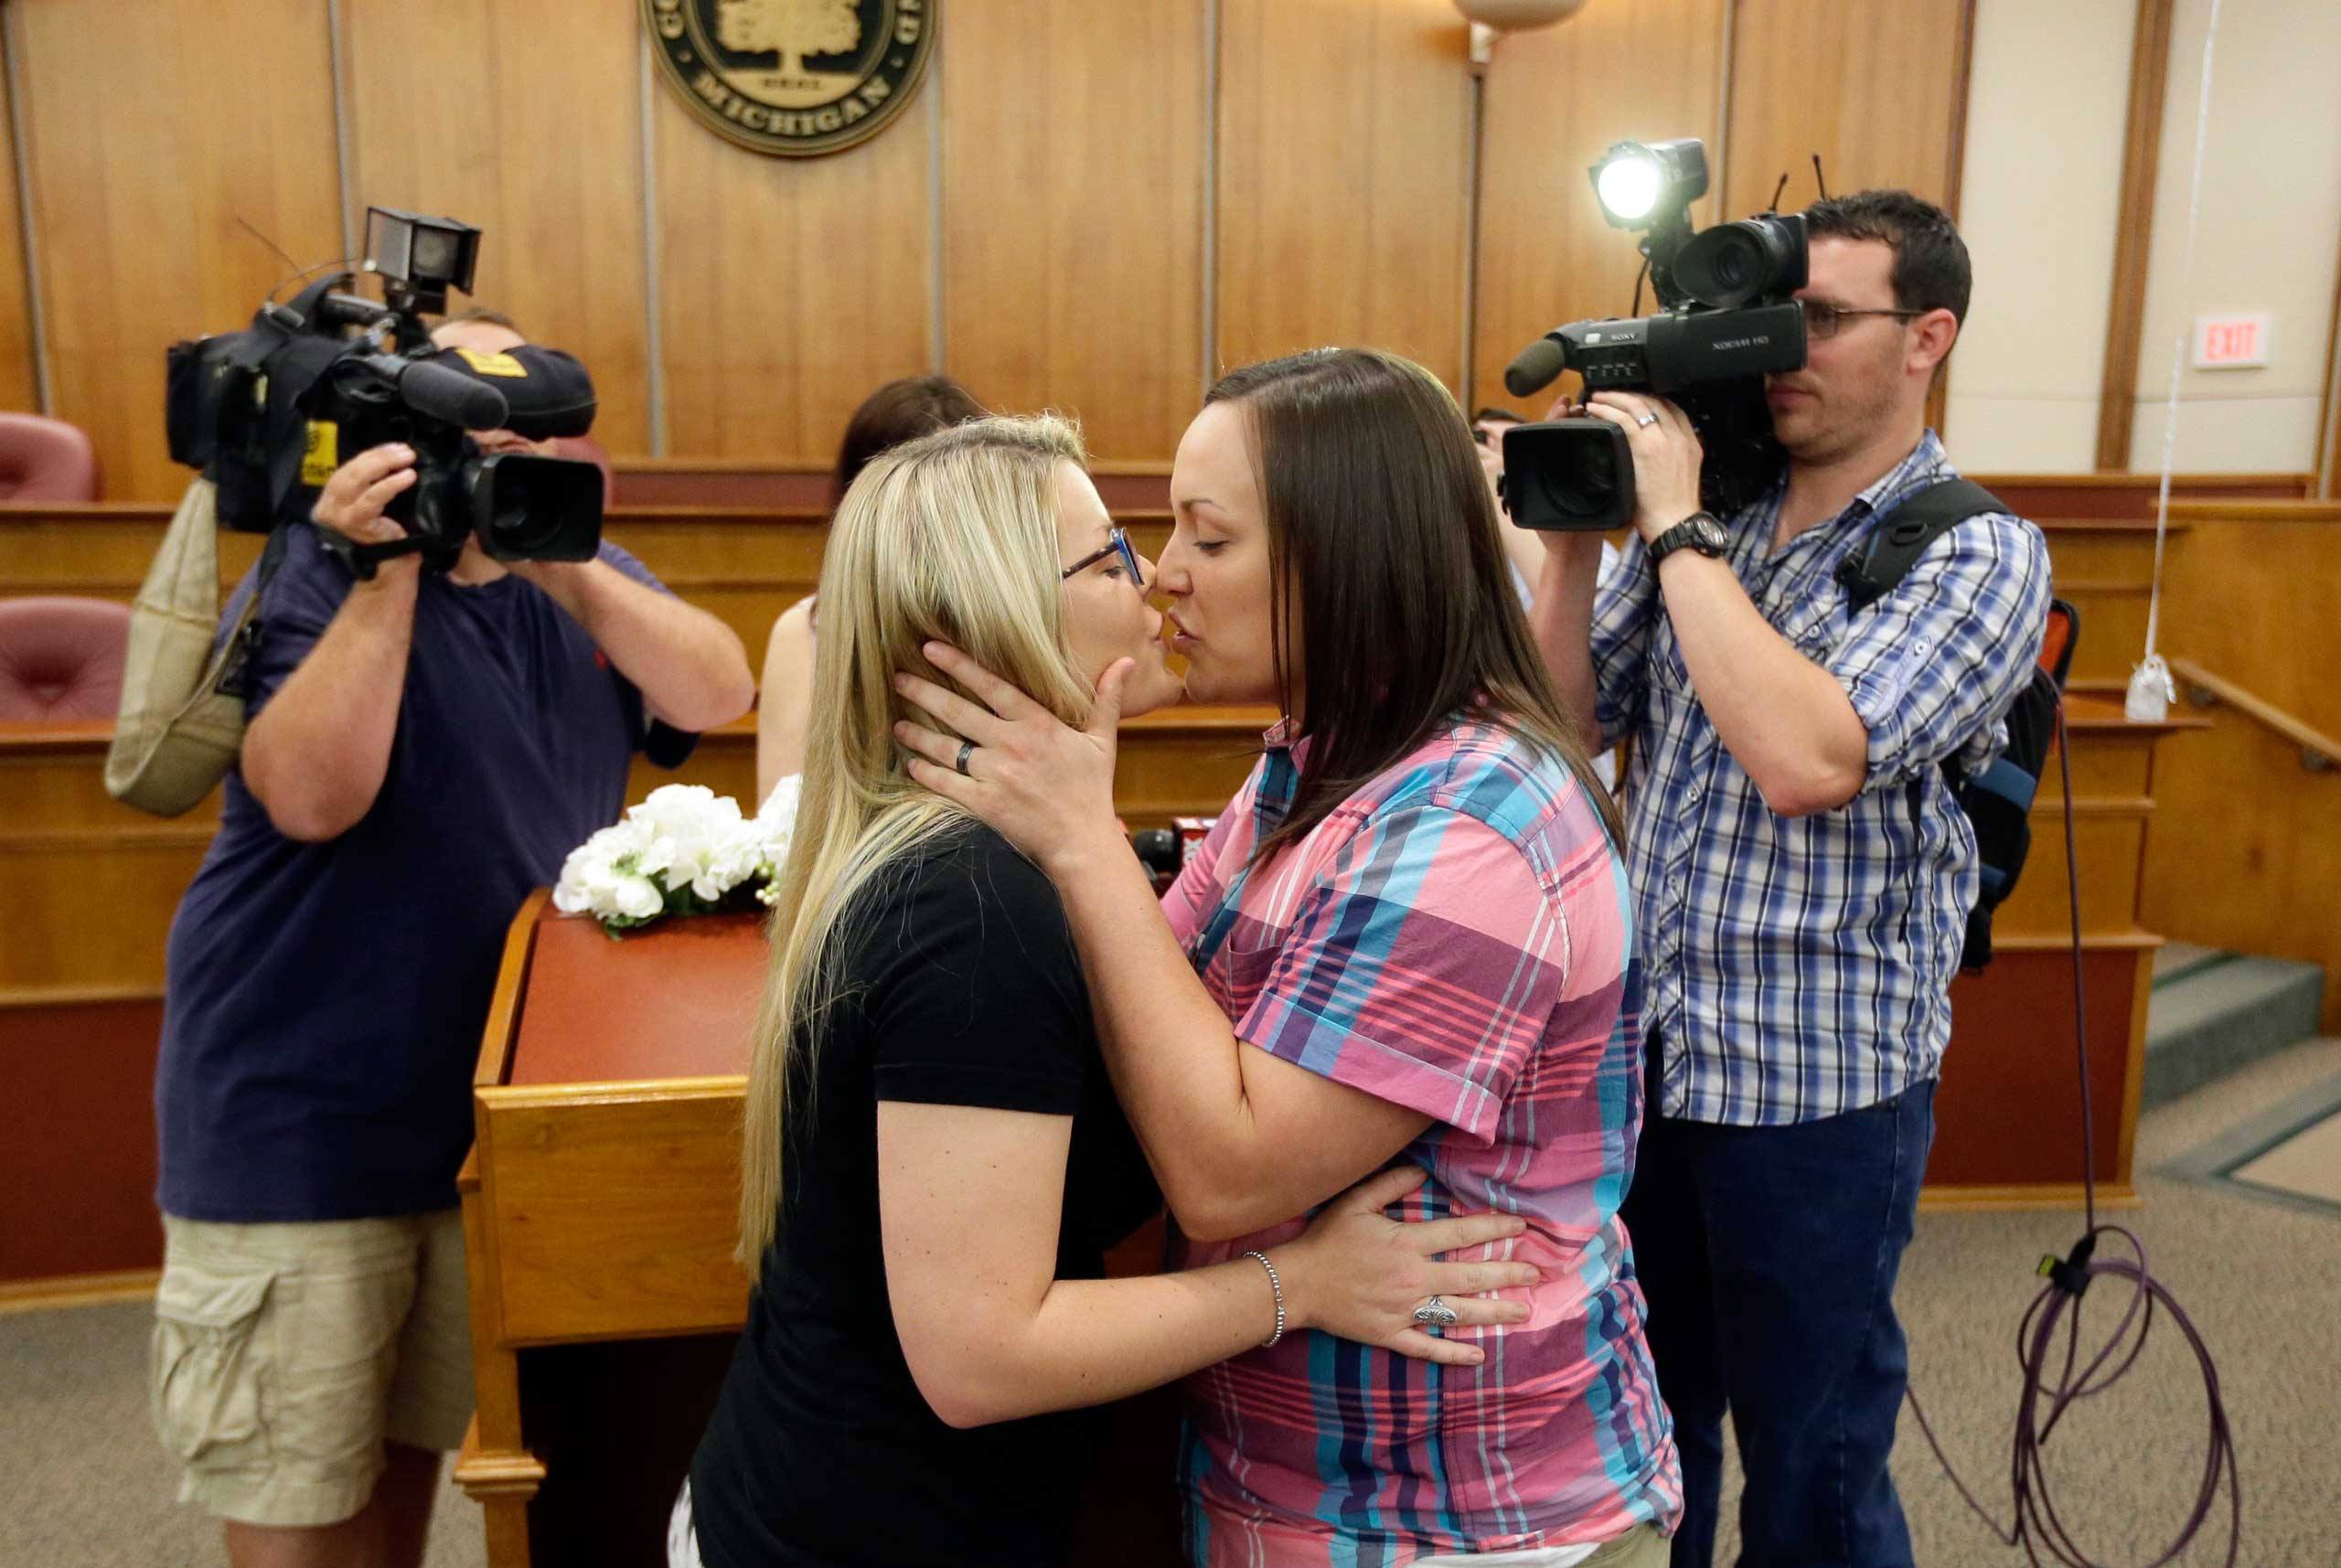 Breanne Brodak, left, and Cortney Tucker kiss after being married by Oakland County Clerk Lisa Brown in Pontiac, Mich. on June 26, 2015.